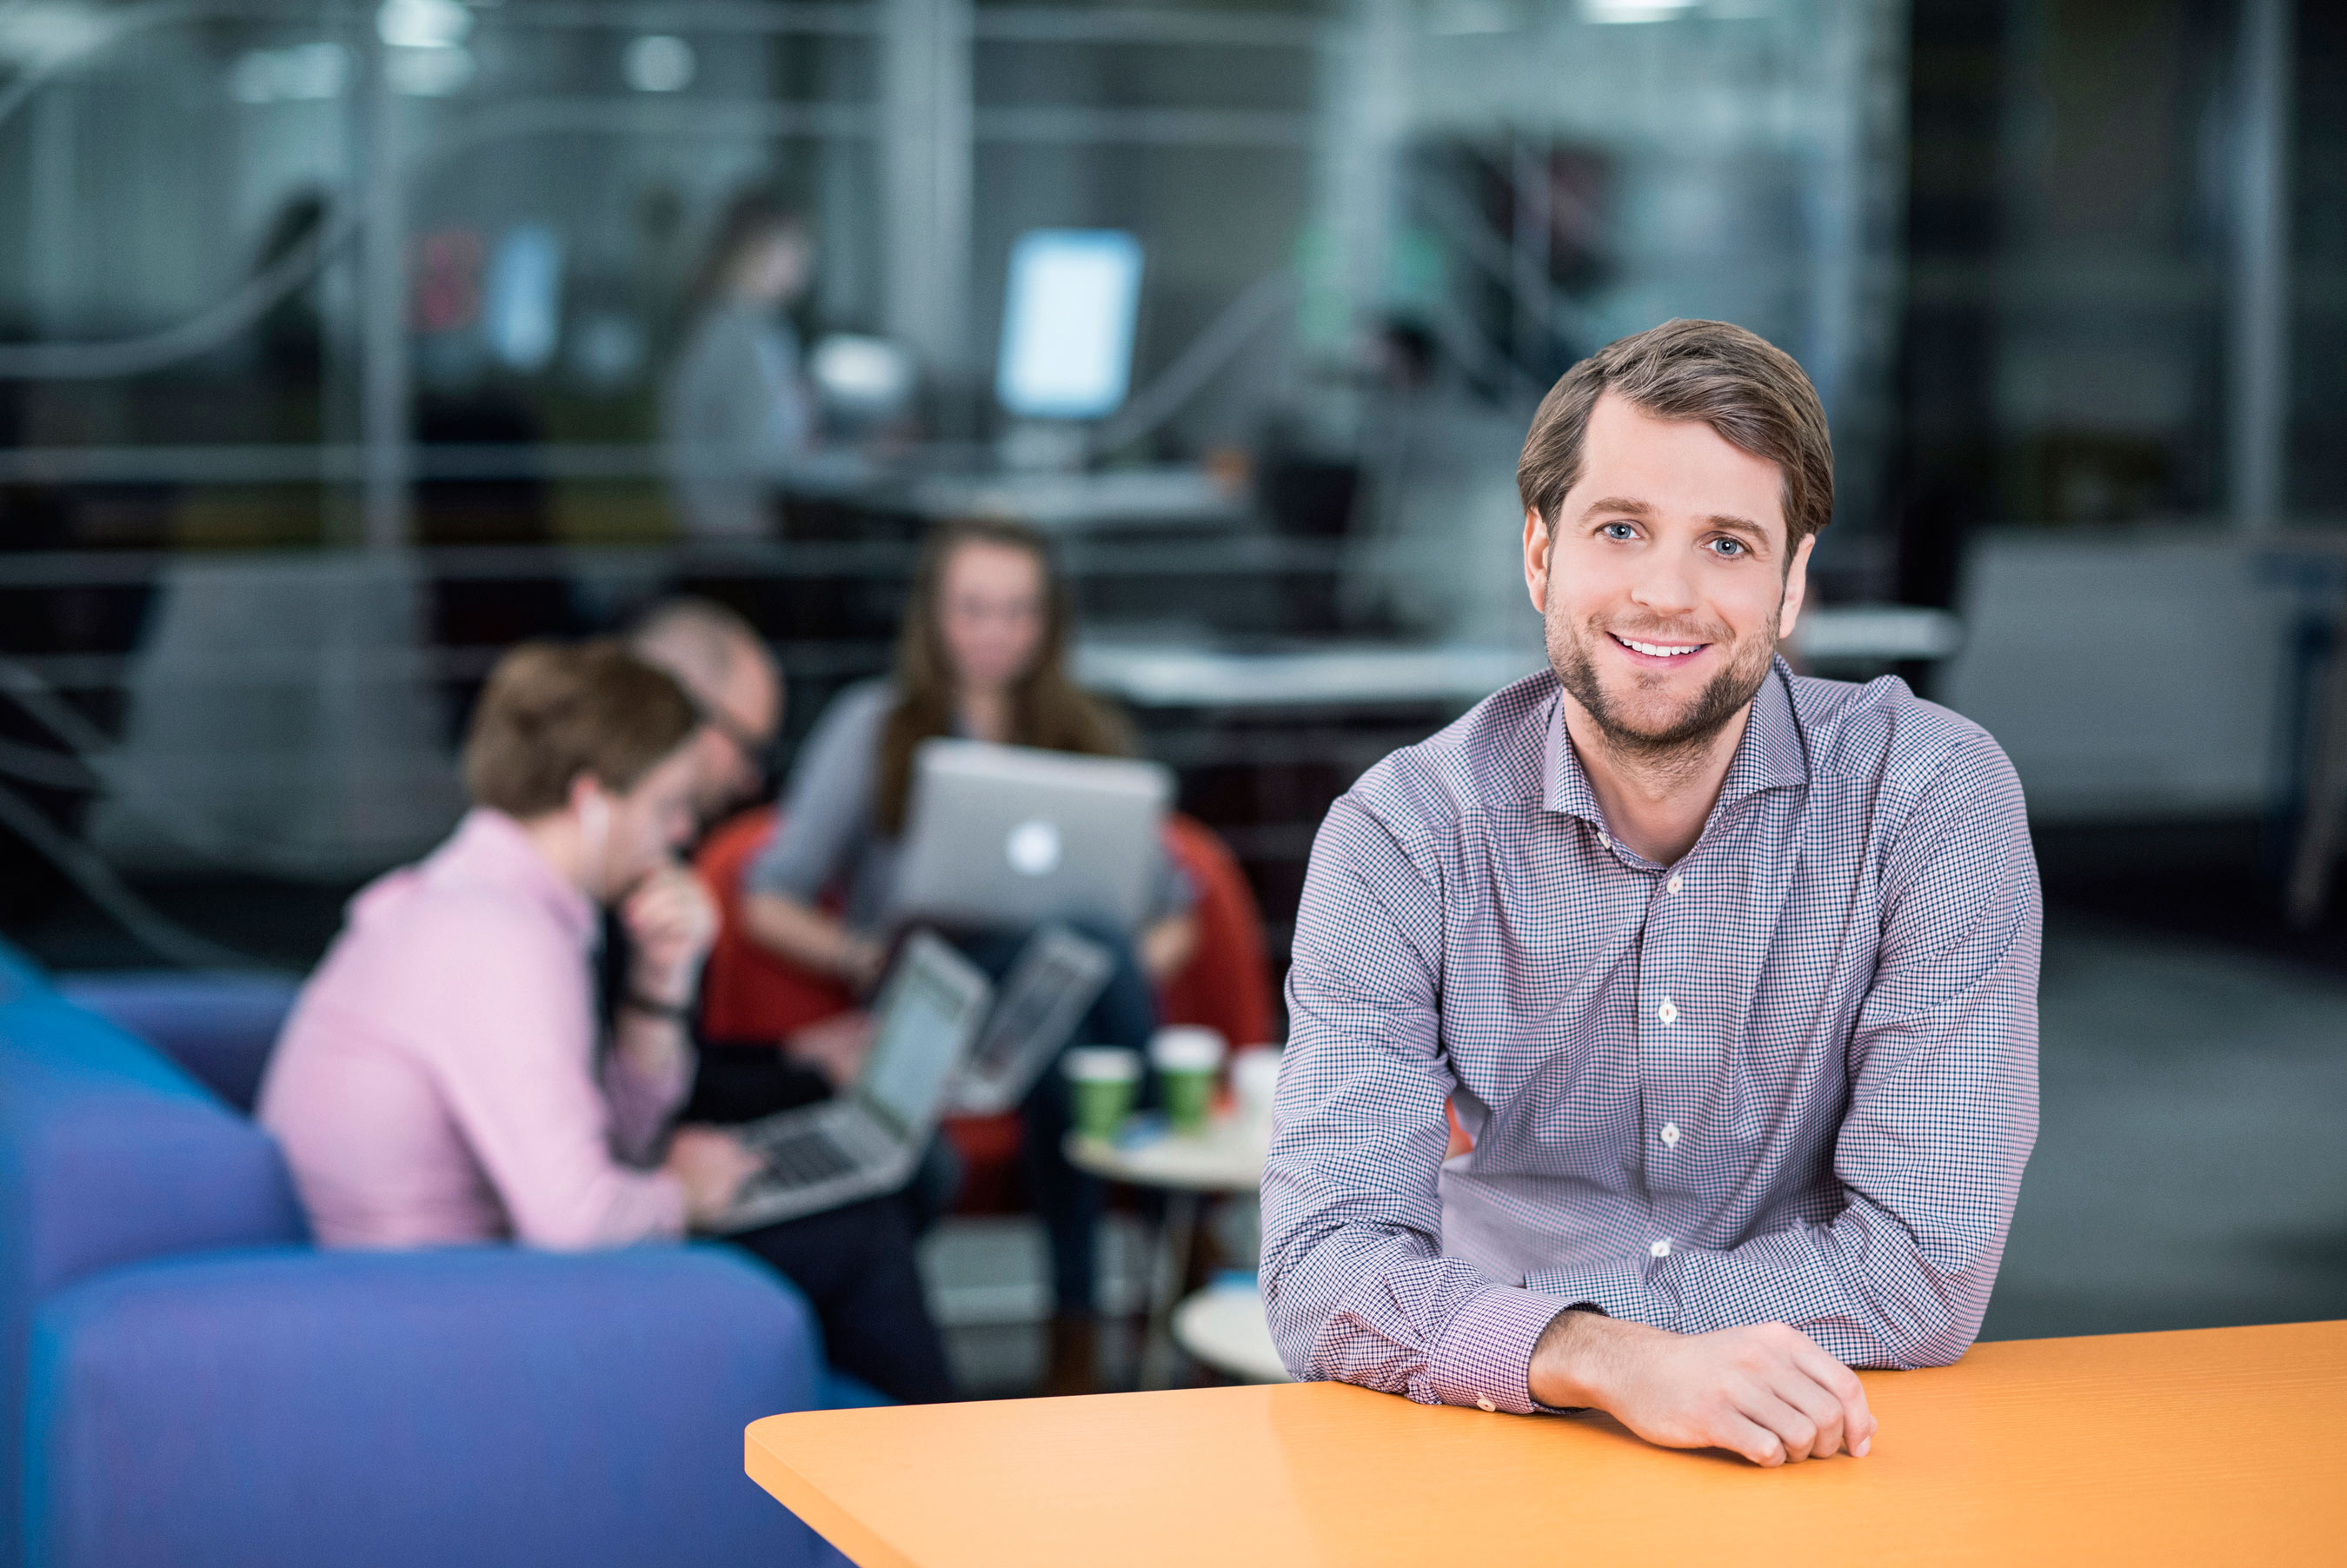 Sebastian Siemiatkowski, co-founder and CEO of Klarna